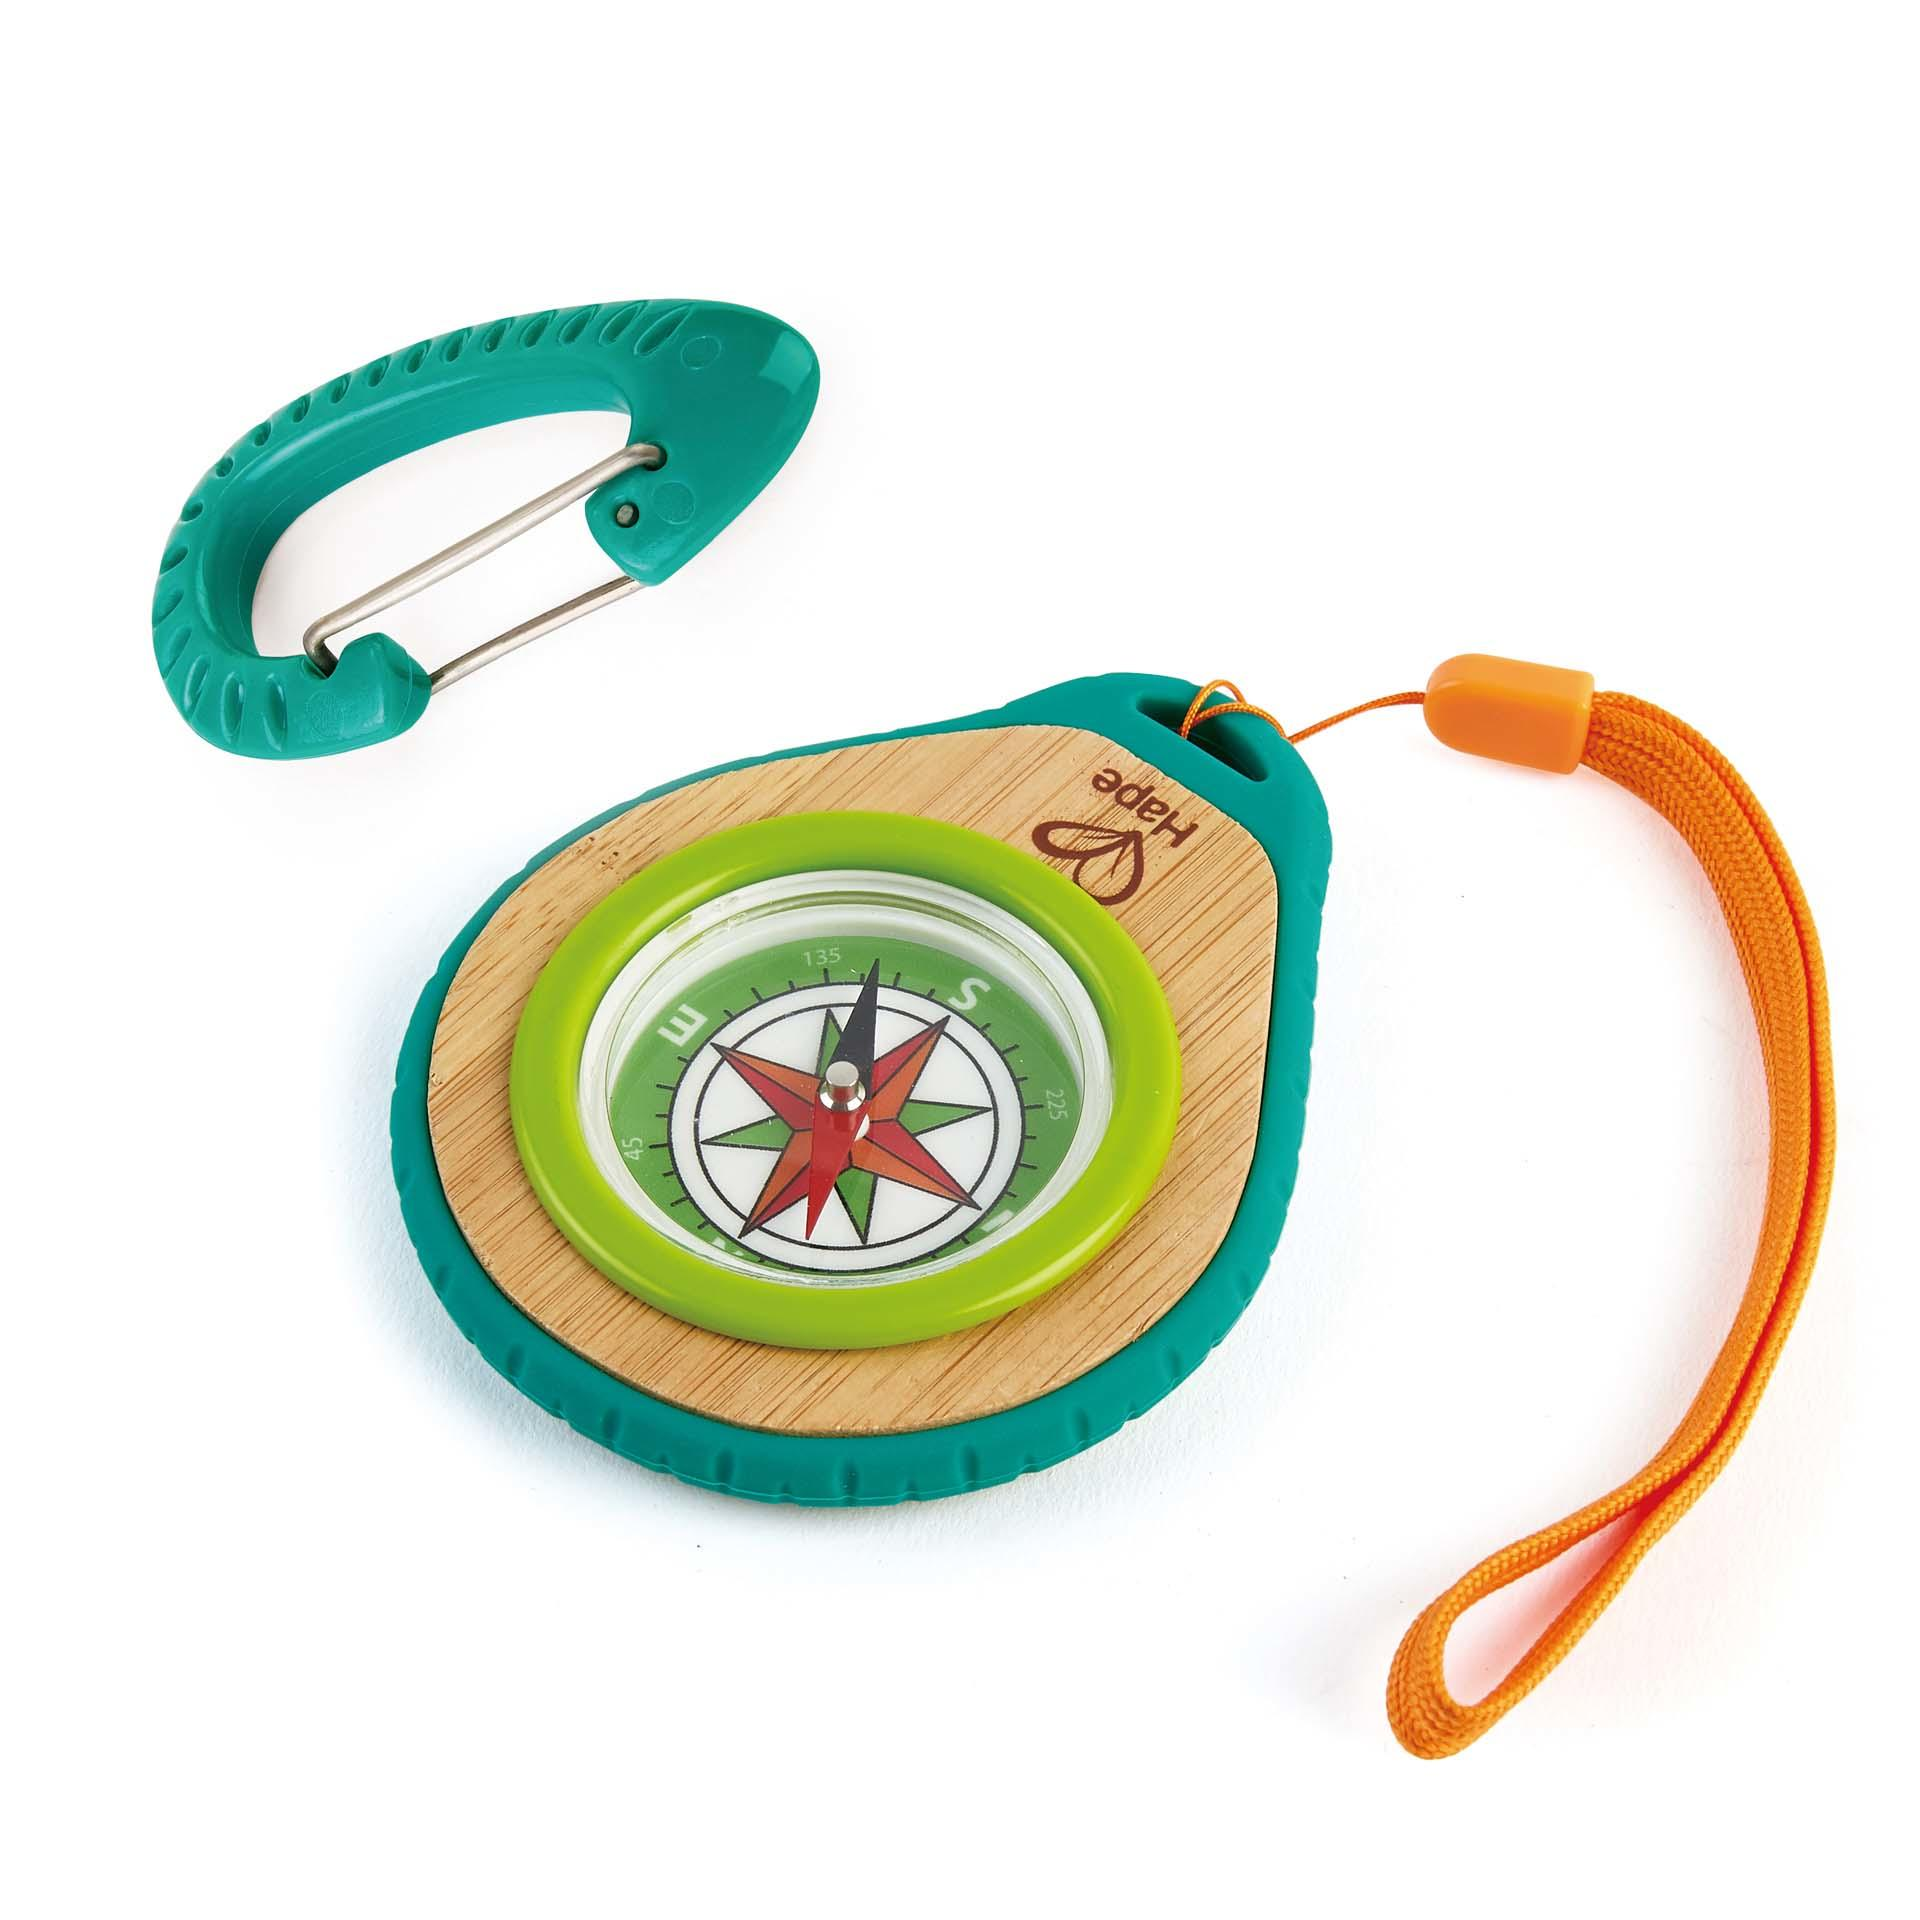 Compass with an orange handle plus a green carabiner on a white background.